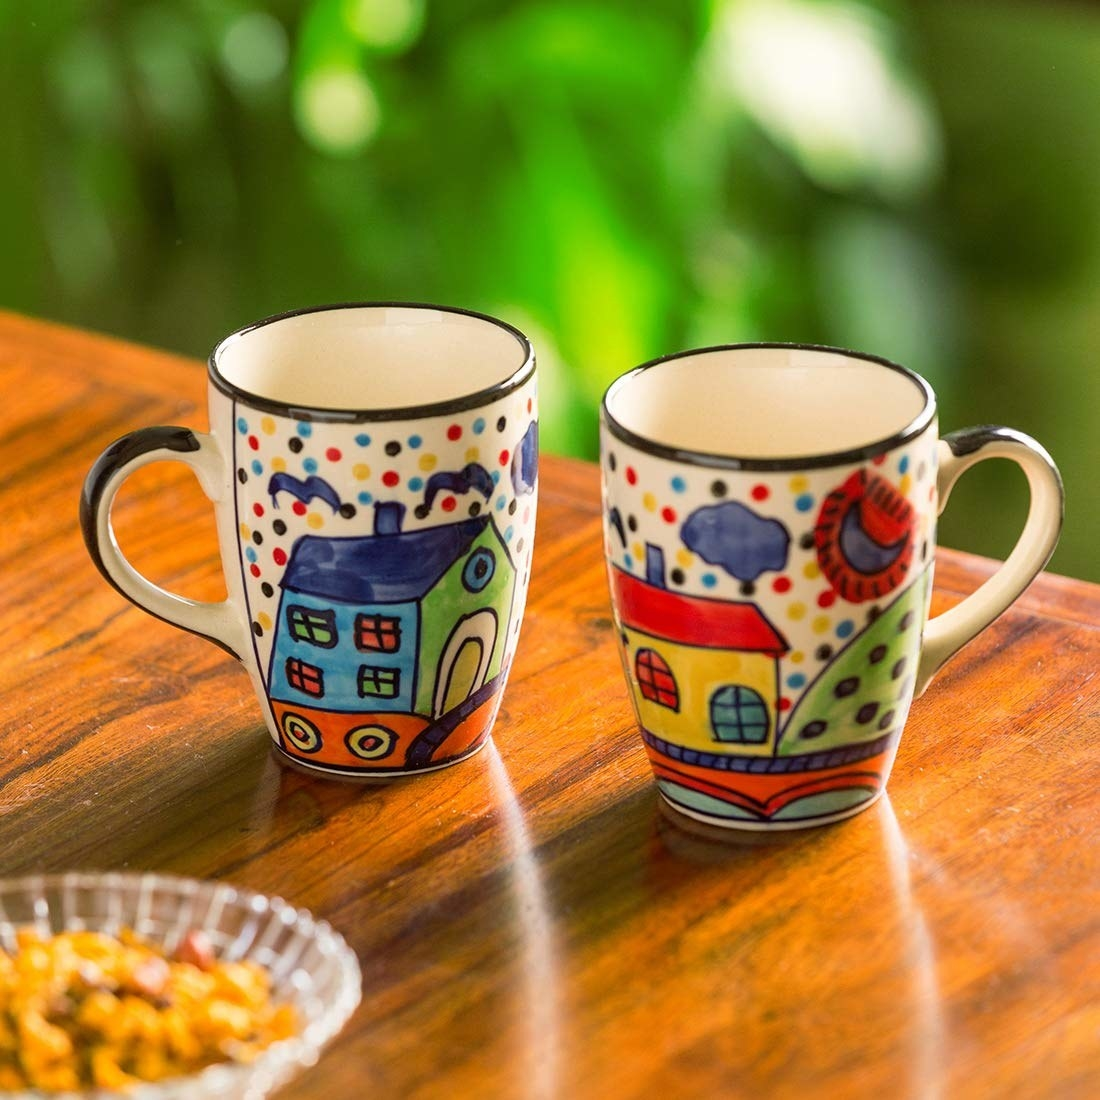 Two mugs with houses on them